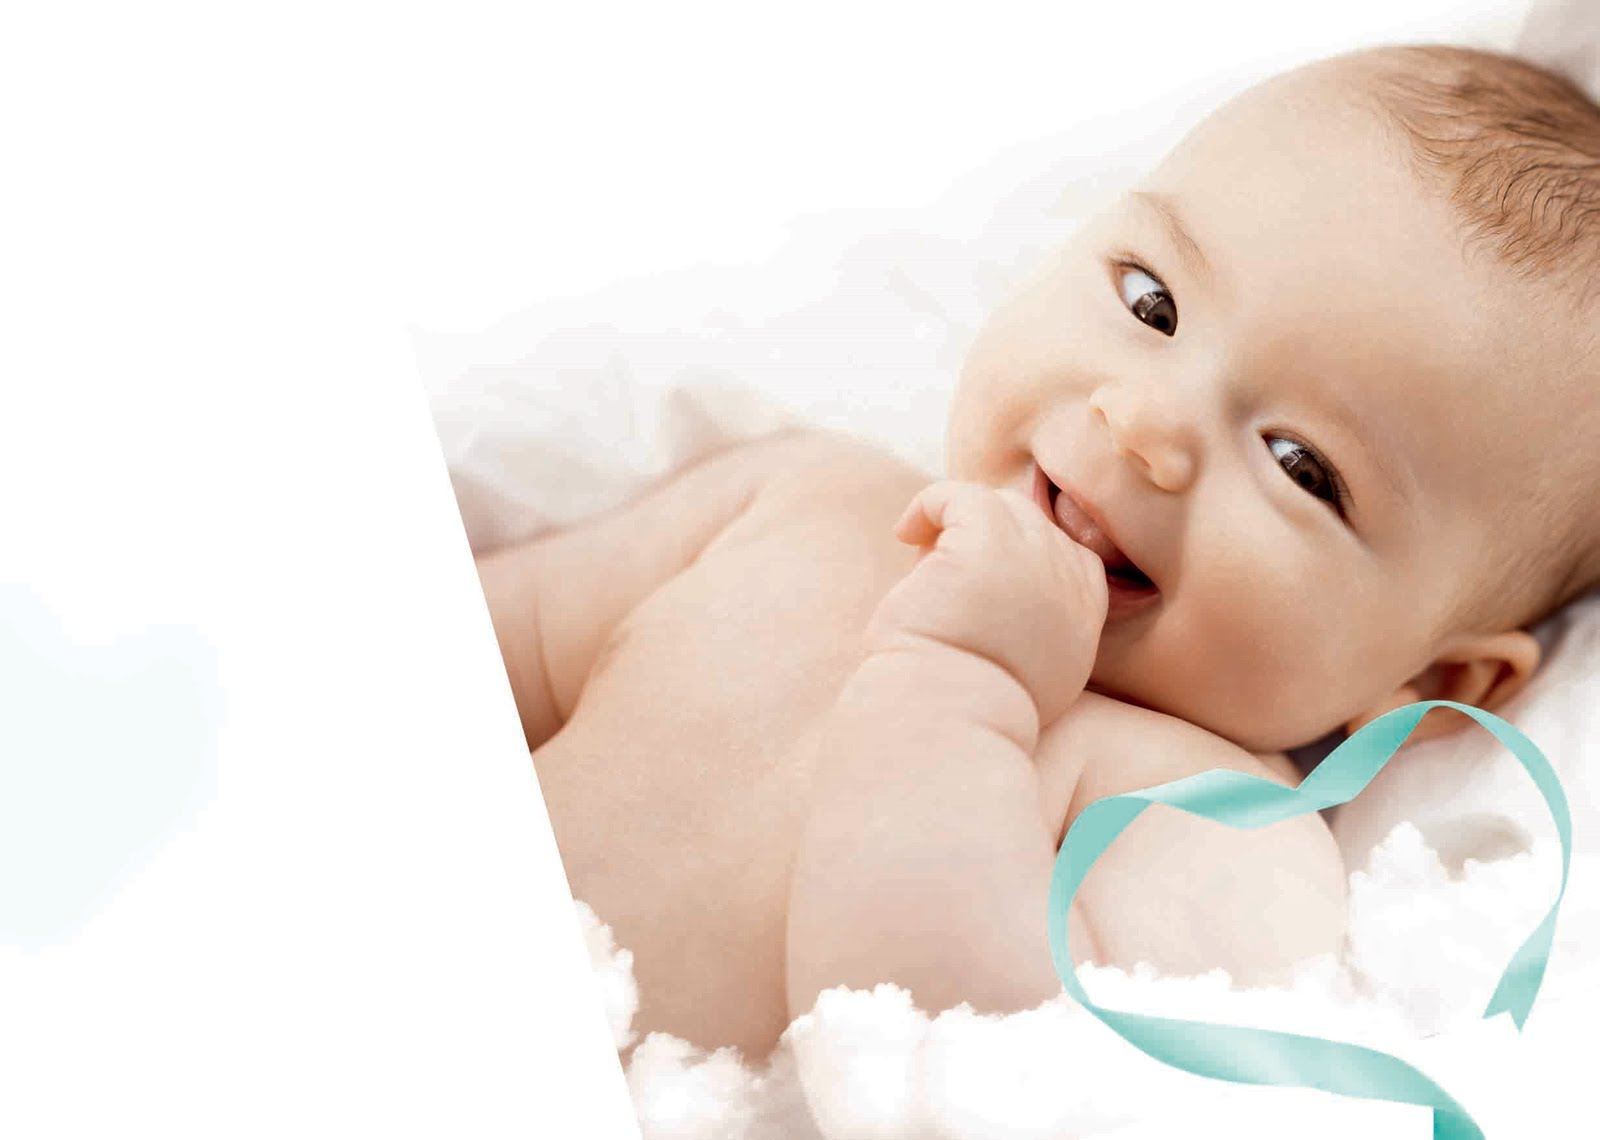 How Not to Wash Your Baby   Immediate Safety